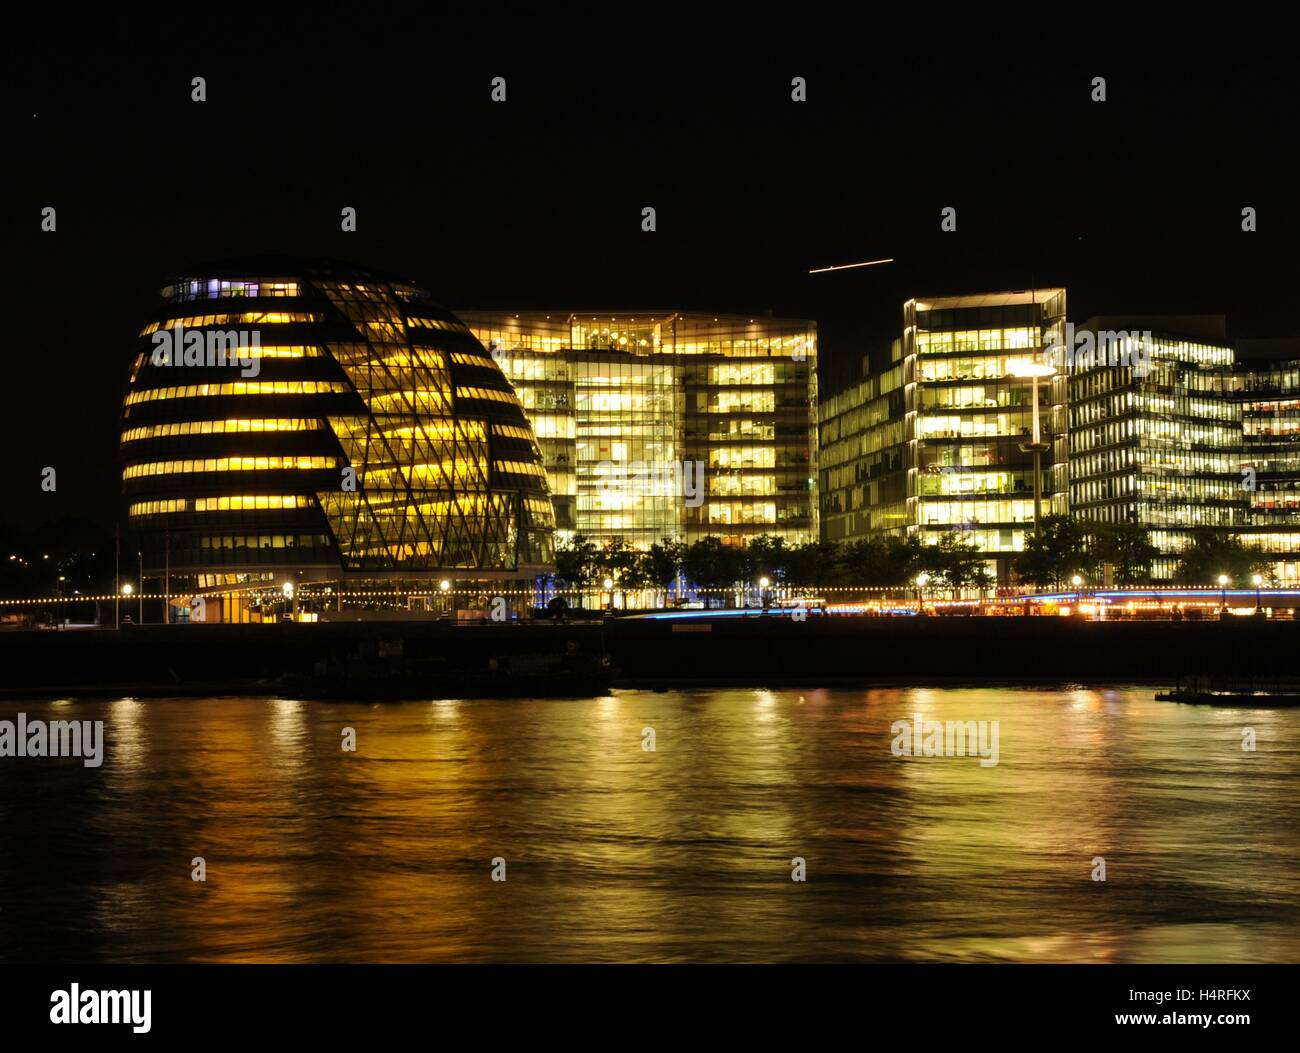 London's City Hall and the river Thames, at night. - Stock Image